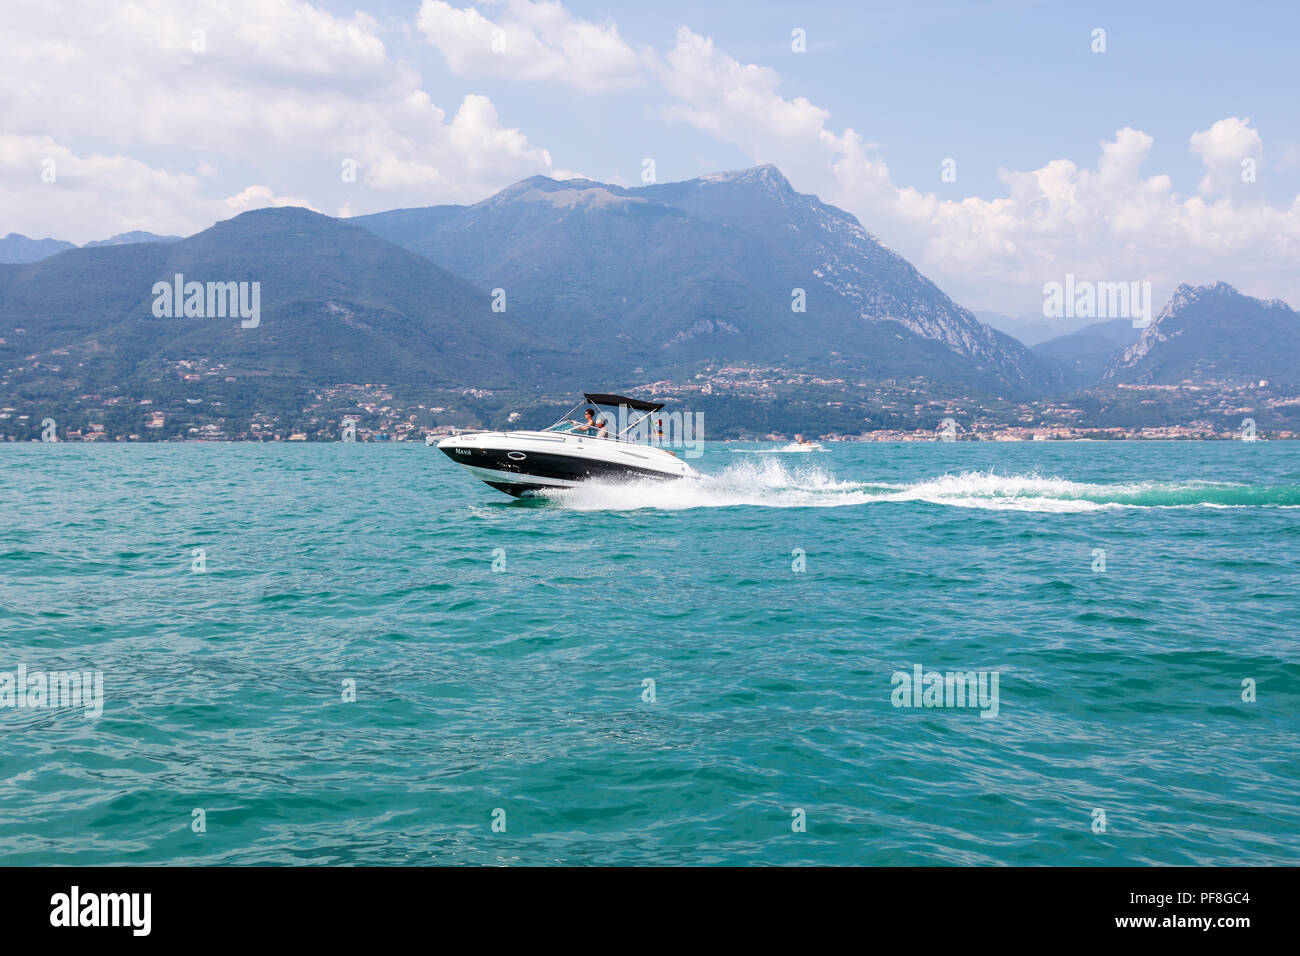 Fast speedboat on Lake Garda in front of mountains.  The powerboat has a bow wave and a wake and is moving right to left - Stock Image